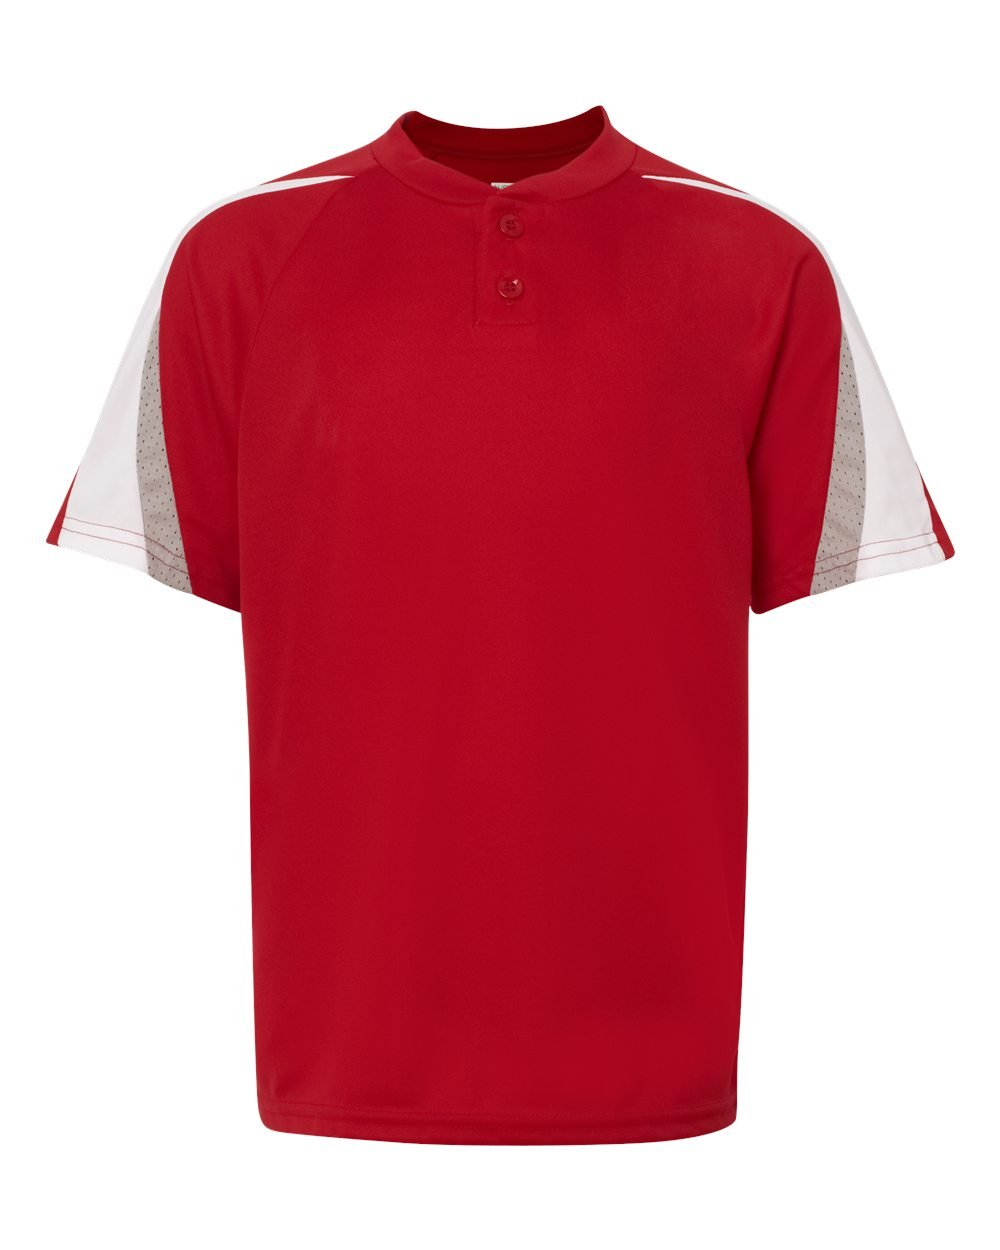 Augusta Sportswear Boys ' Power Plus野球ジャージー B007P86B2G Small|Red/White/Silver Grey Red/White/Silver Grey Small